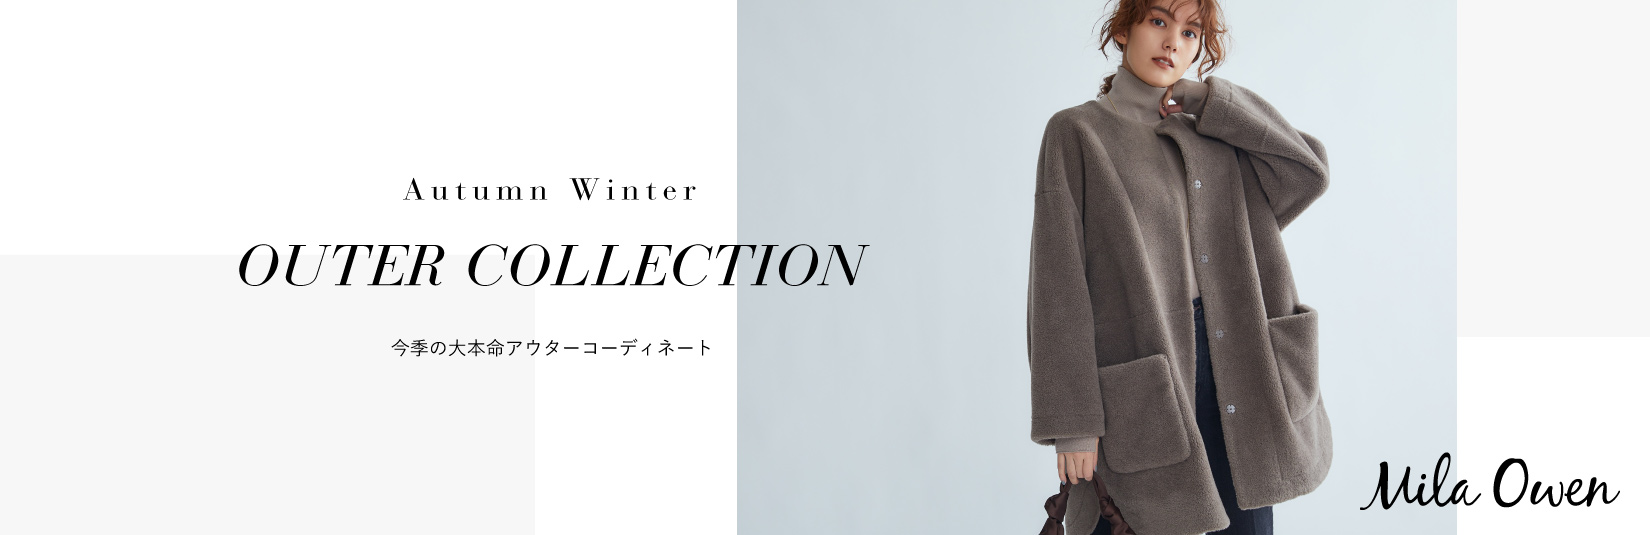 Mila Owen Autumn Winter OUTER COLLECTION